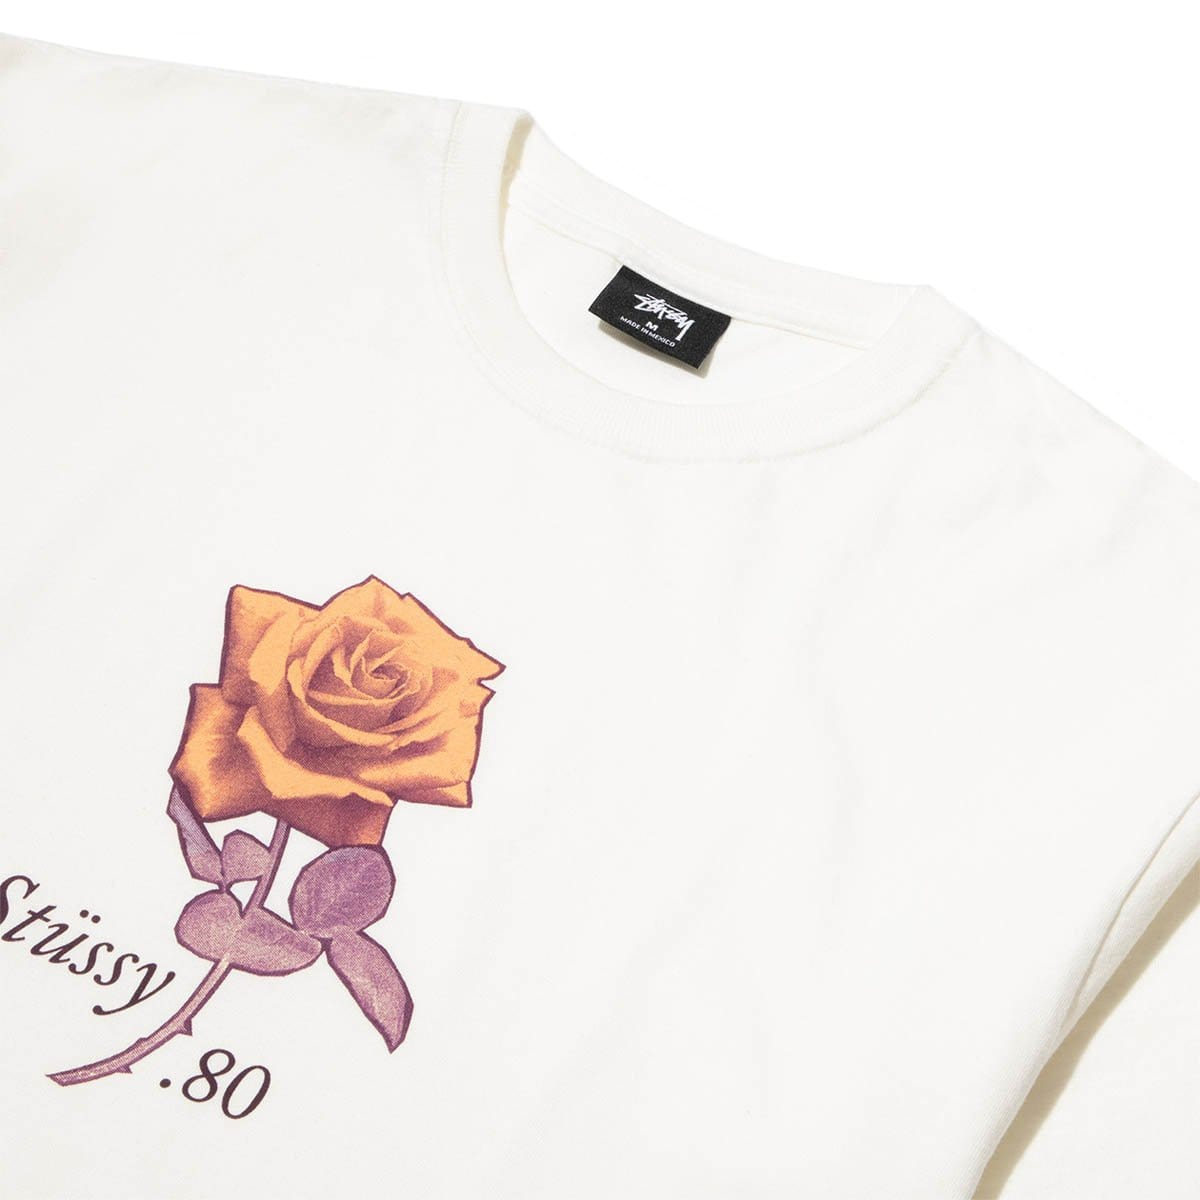 Stüssy T-Shirts 80 ROSE PIG. DYED TEE